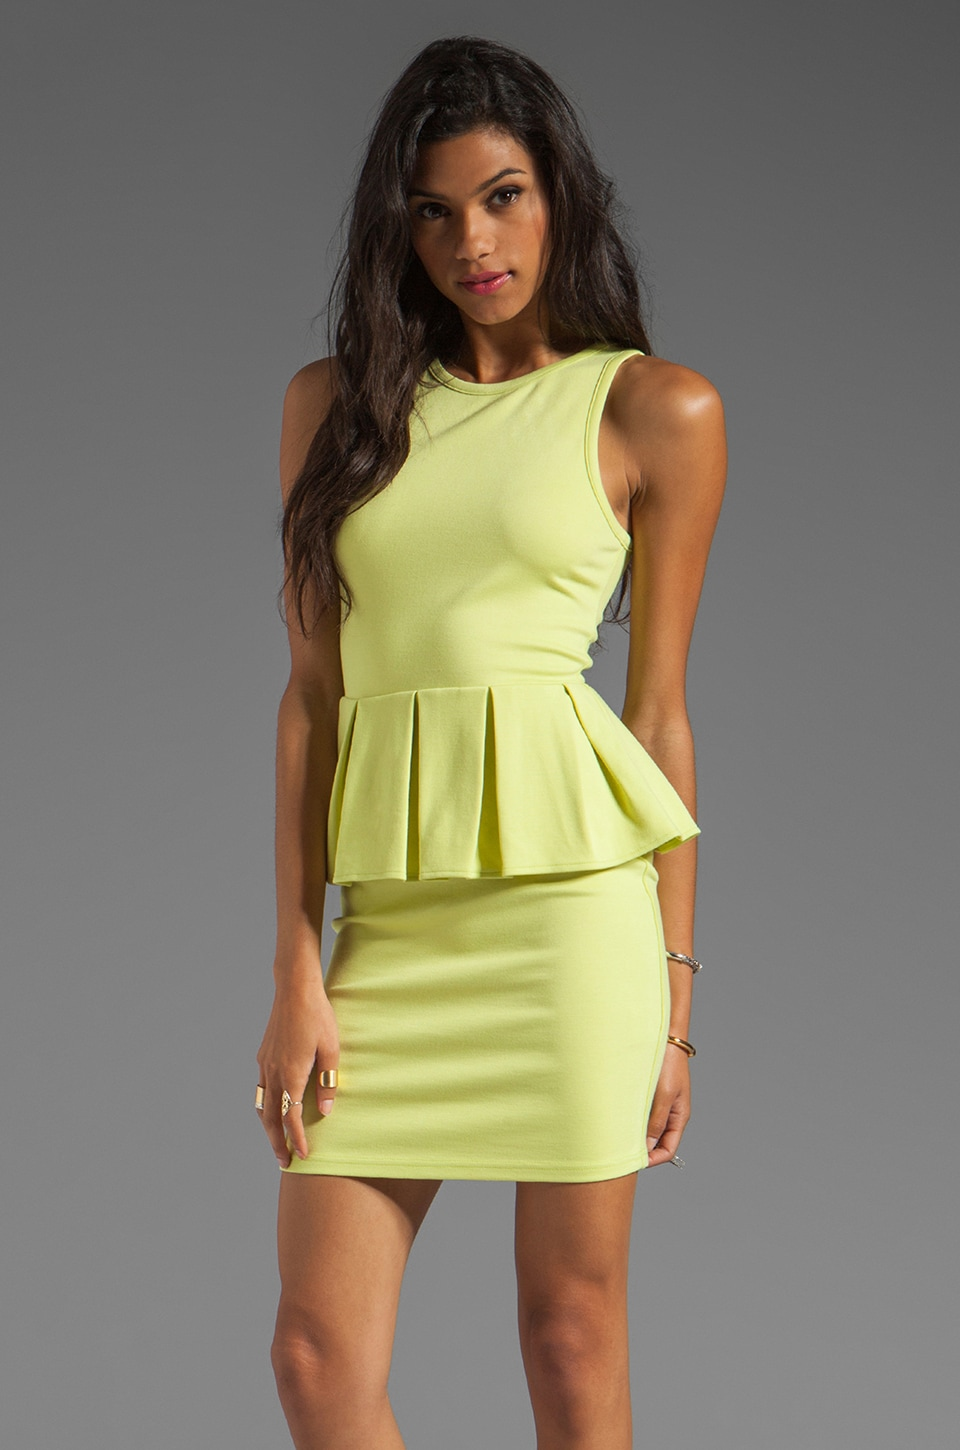 Talulah My Soft Petal Peplum Dress in Lime